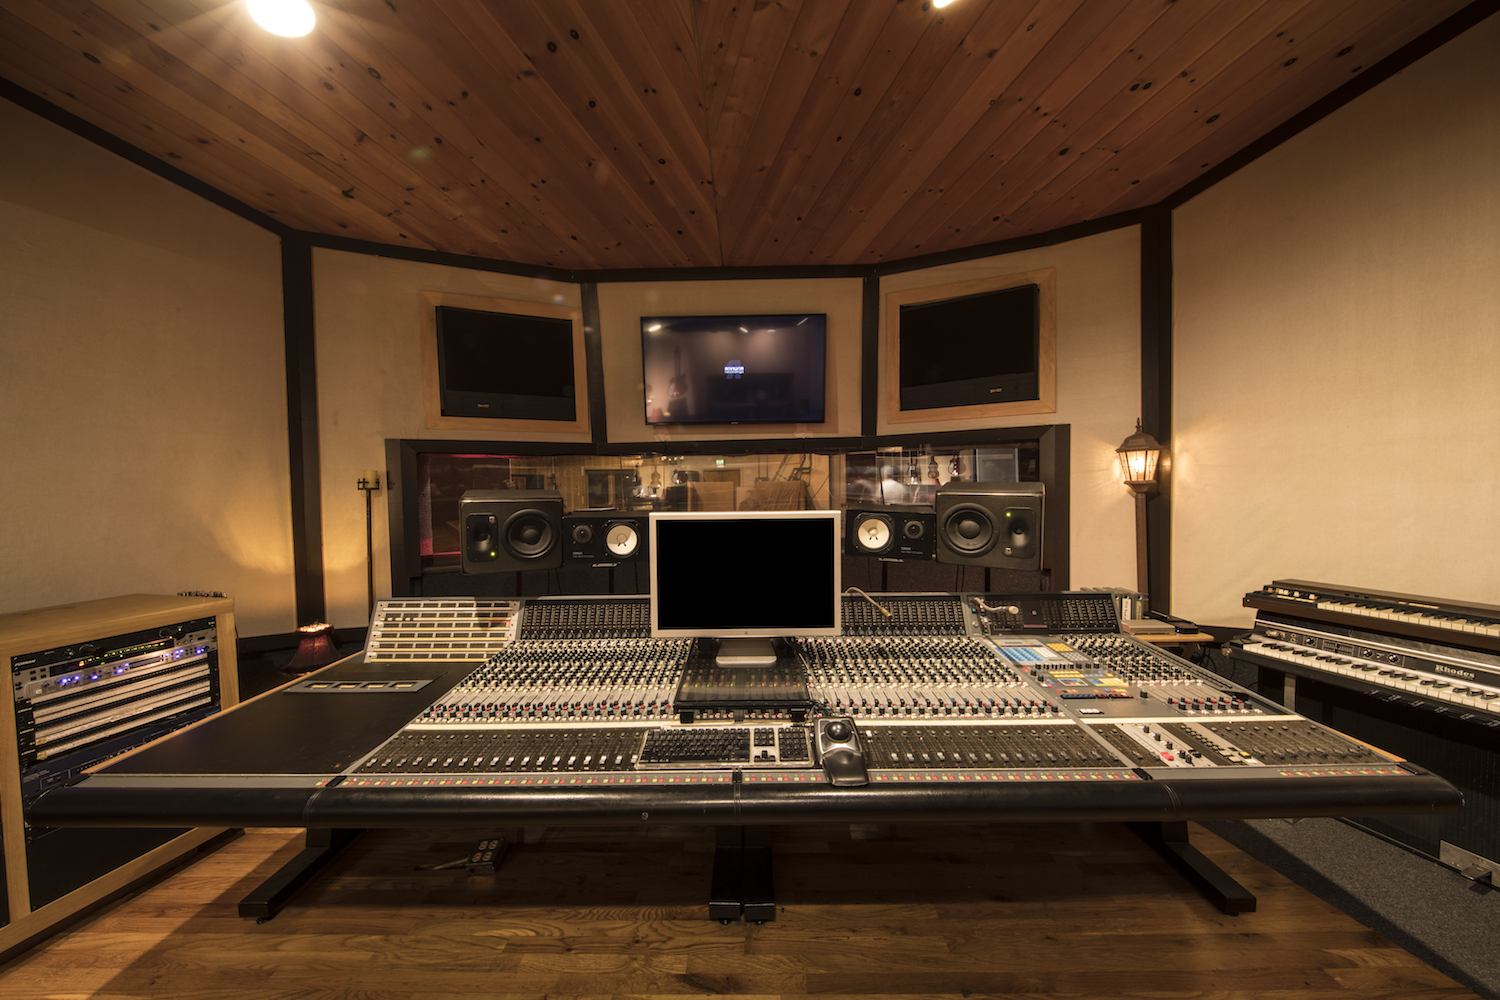 Studio A - Built in the 1970's, this large control room is a hidden gem for artists and producers. Centered around a classic Neve 8128 console with a wide range of vintage analogue outboard. Equipped with Pro Tools HD and Tannoy DMT15 monitoring.